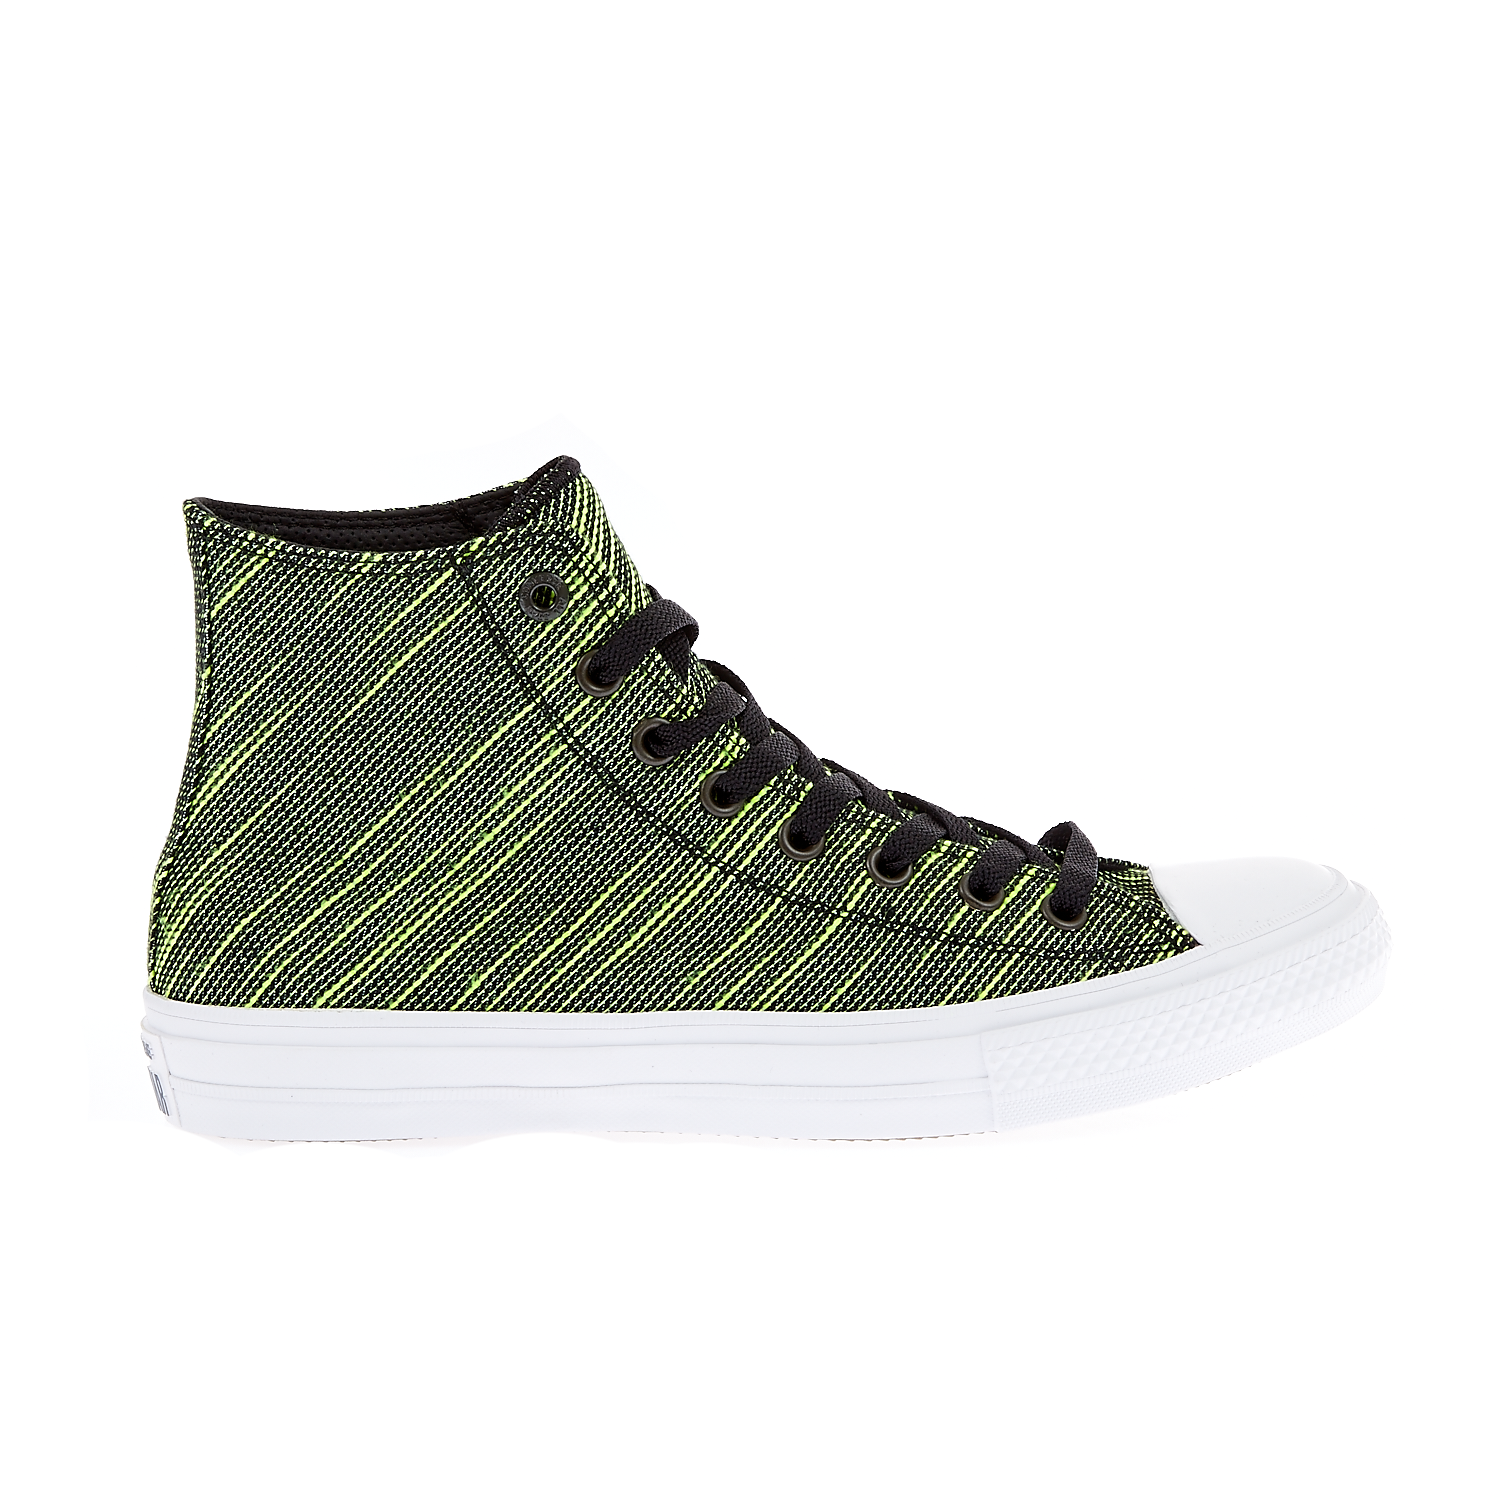 CONVERSE – Unisex παπούτσια Chuck Taylor All Star II Hi μαύρα-πράσινα